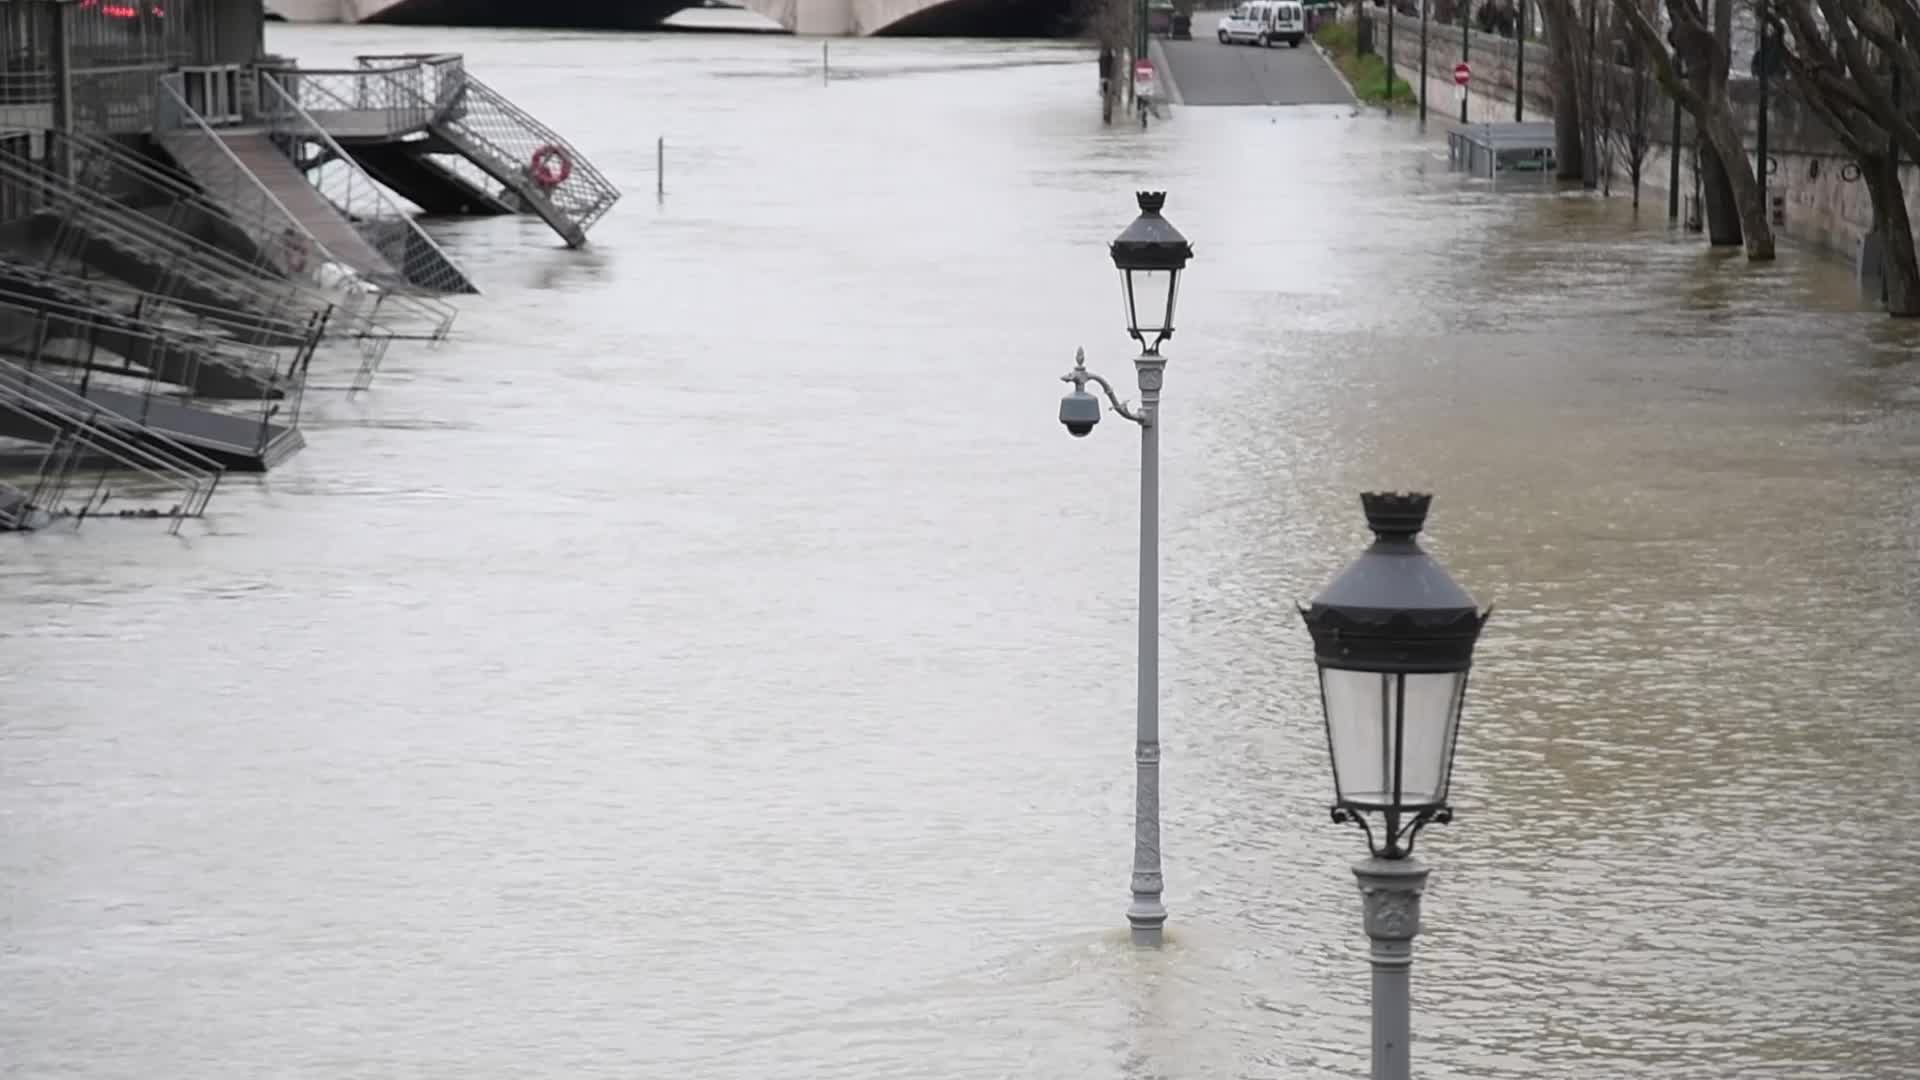 French floods: Seine river reaches peak in flood-hit Paris